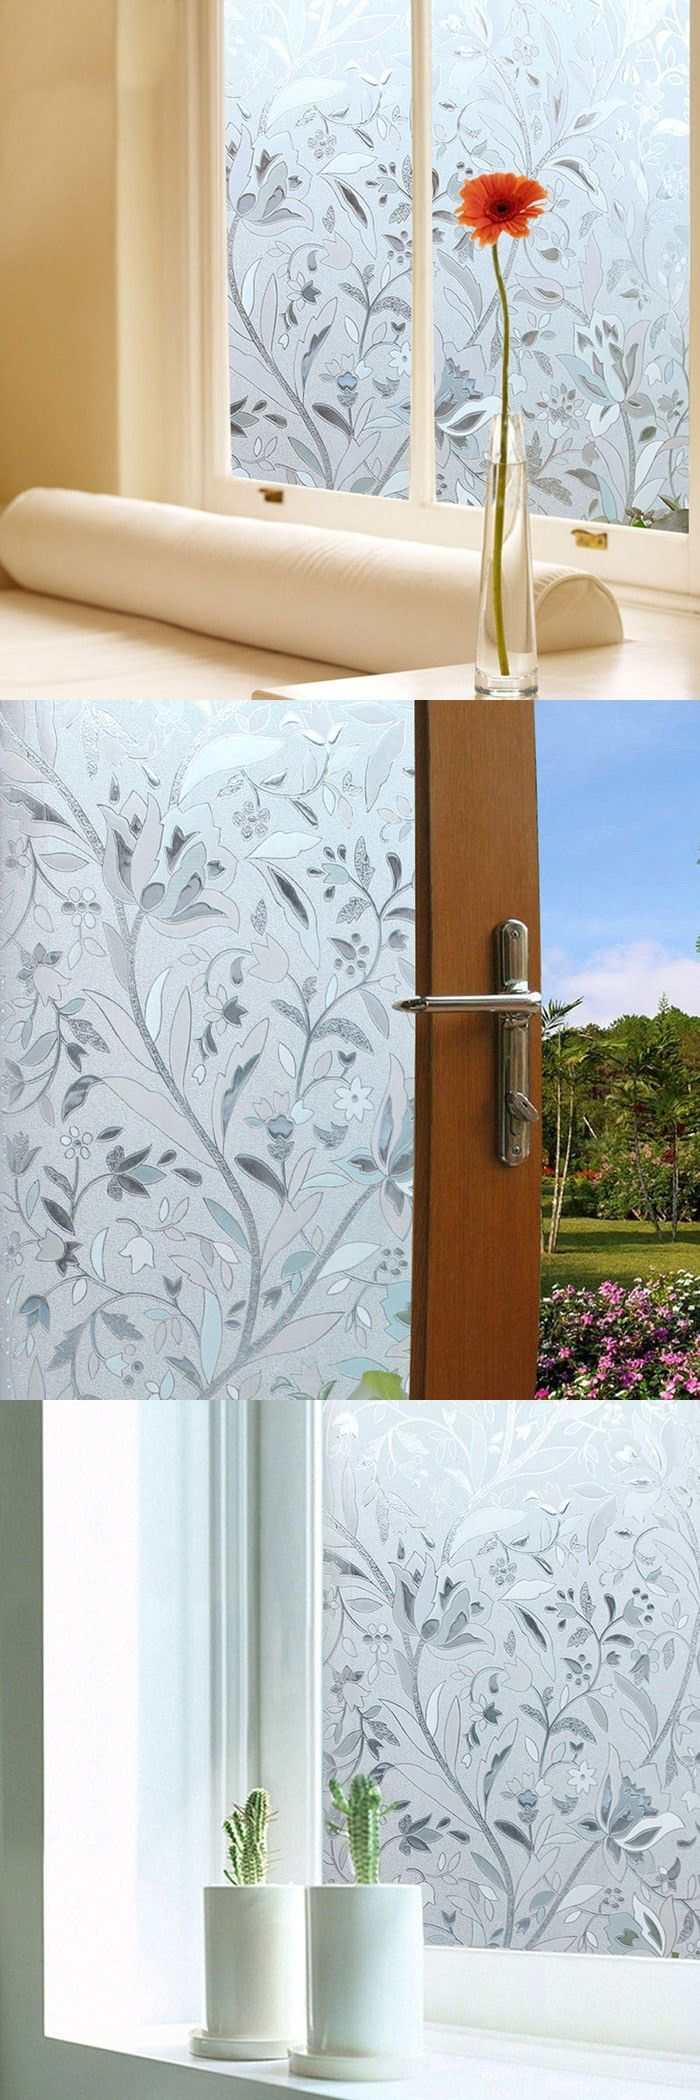 TS-W180 PVC Printing Pattern Window Sticker - TRANSPARENT